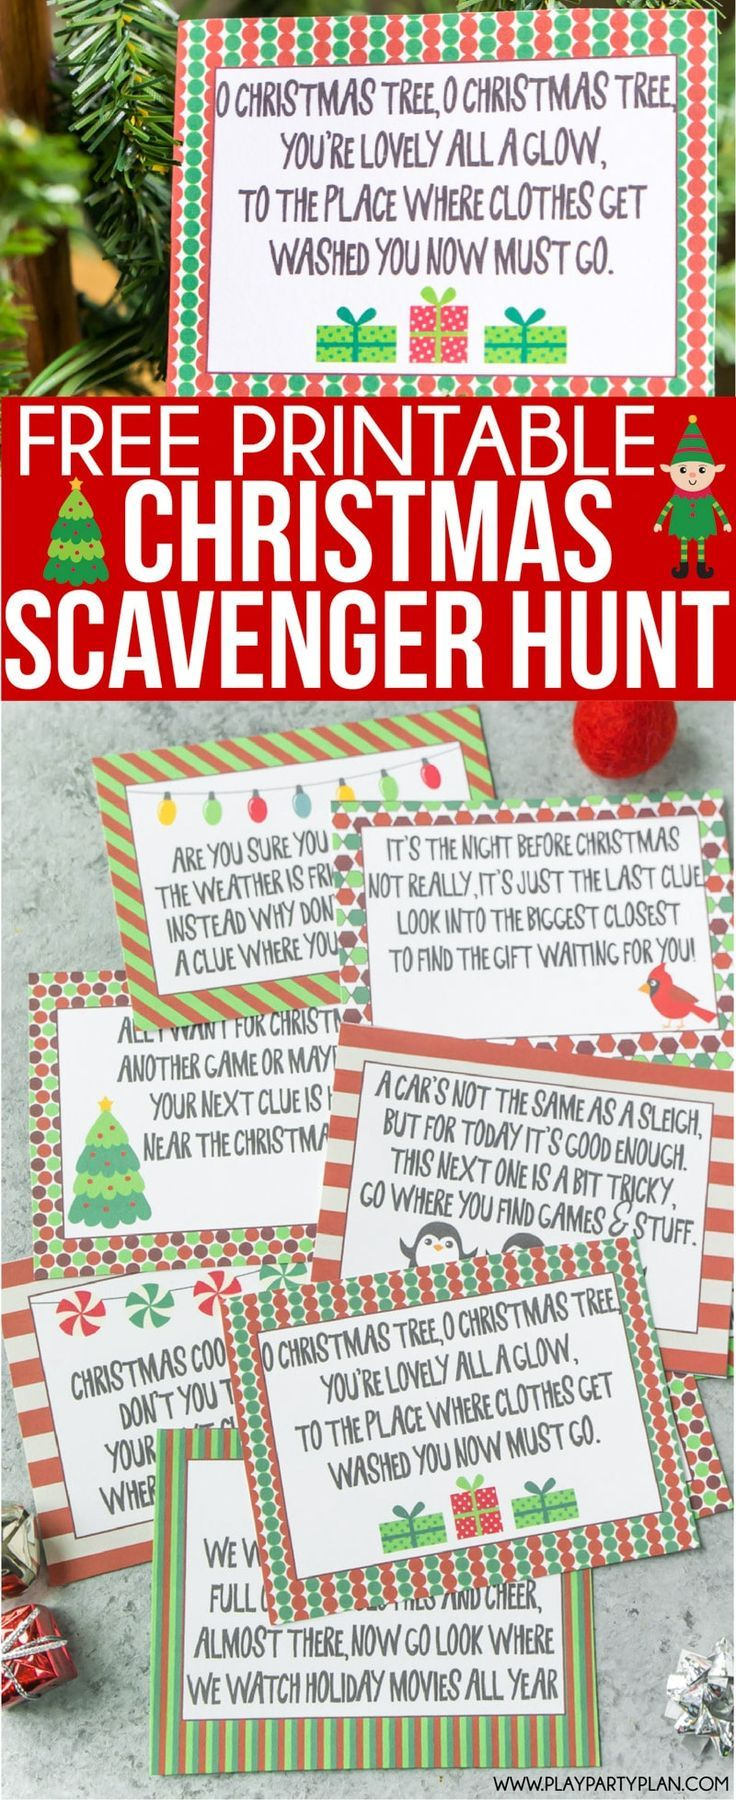 Best Ever Christmas Scavenger Hunt Play Party Plan Christmas Scavenger Hunt Christmas Games For Kids Free Christmas Printables